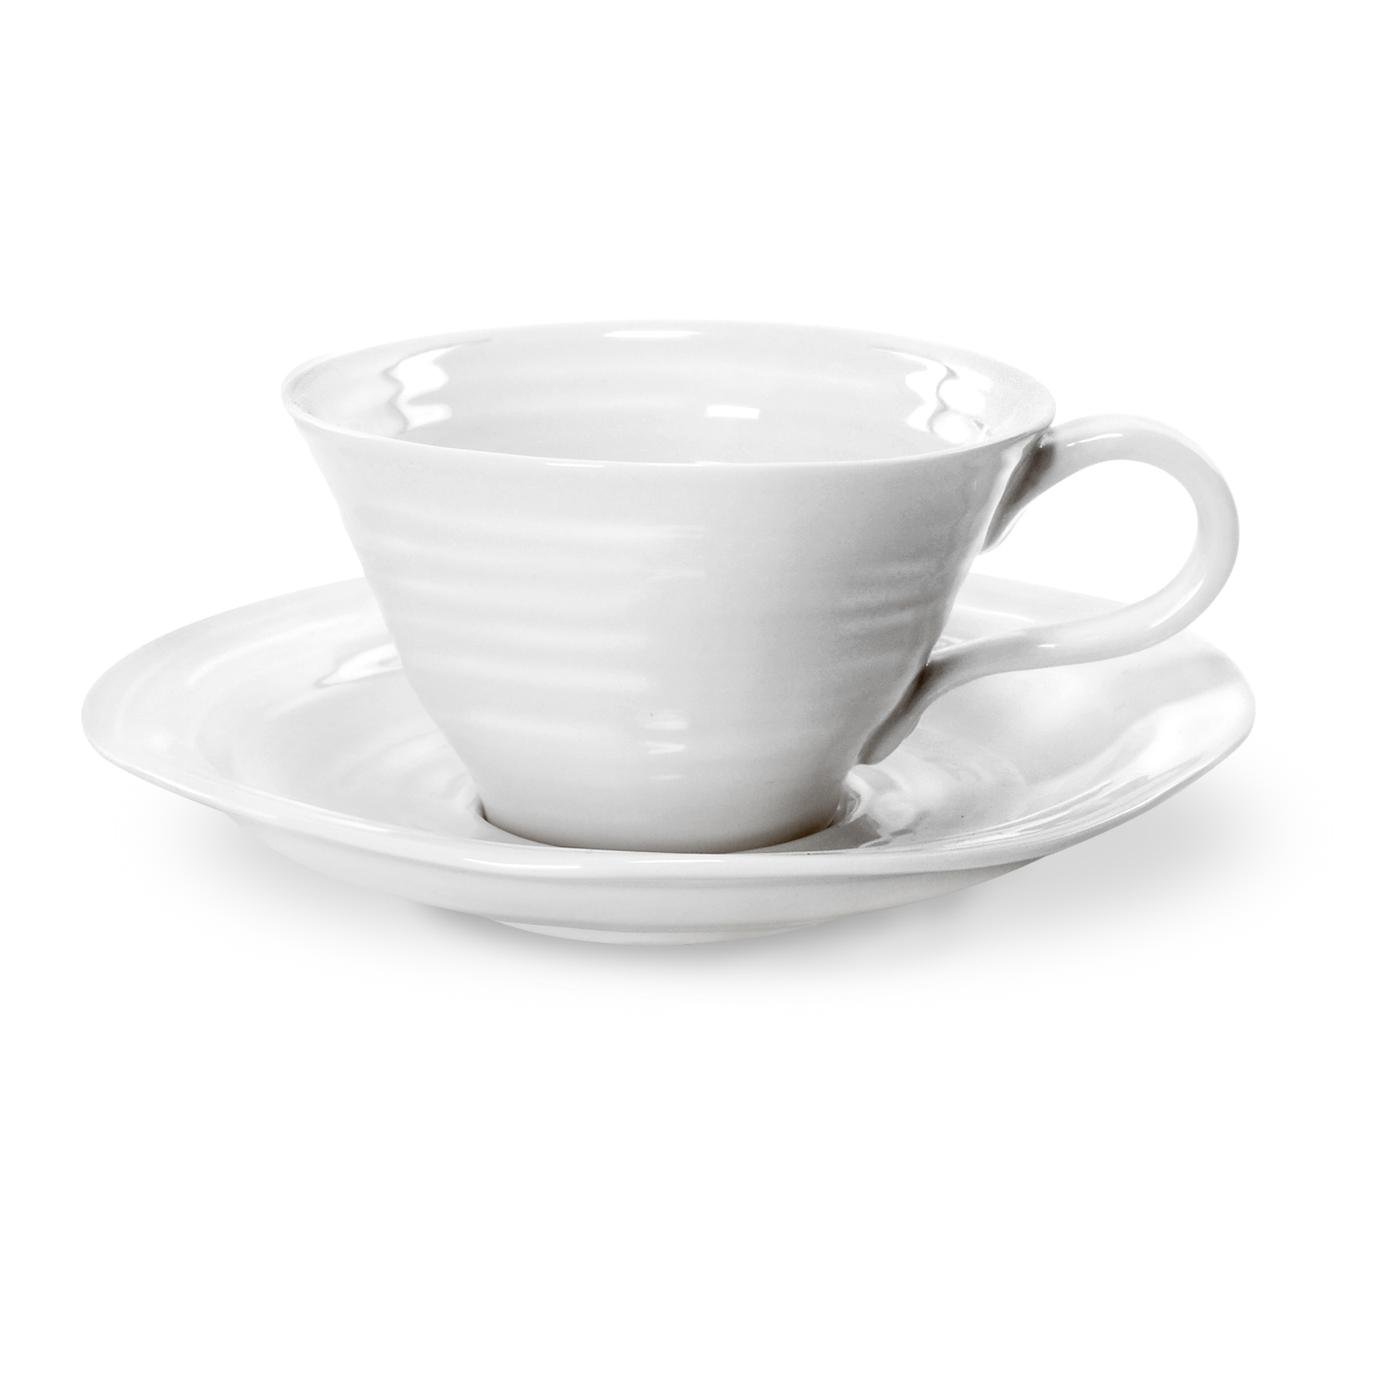 Portmeirion Sophie Conran White Teacup and Saucer, Set of 4 422179